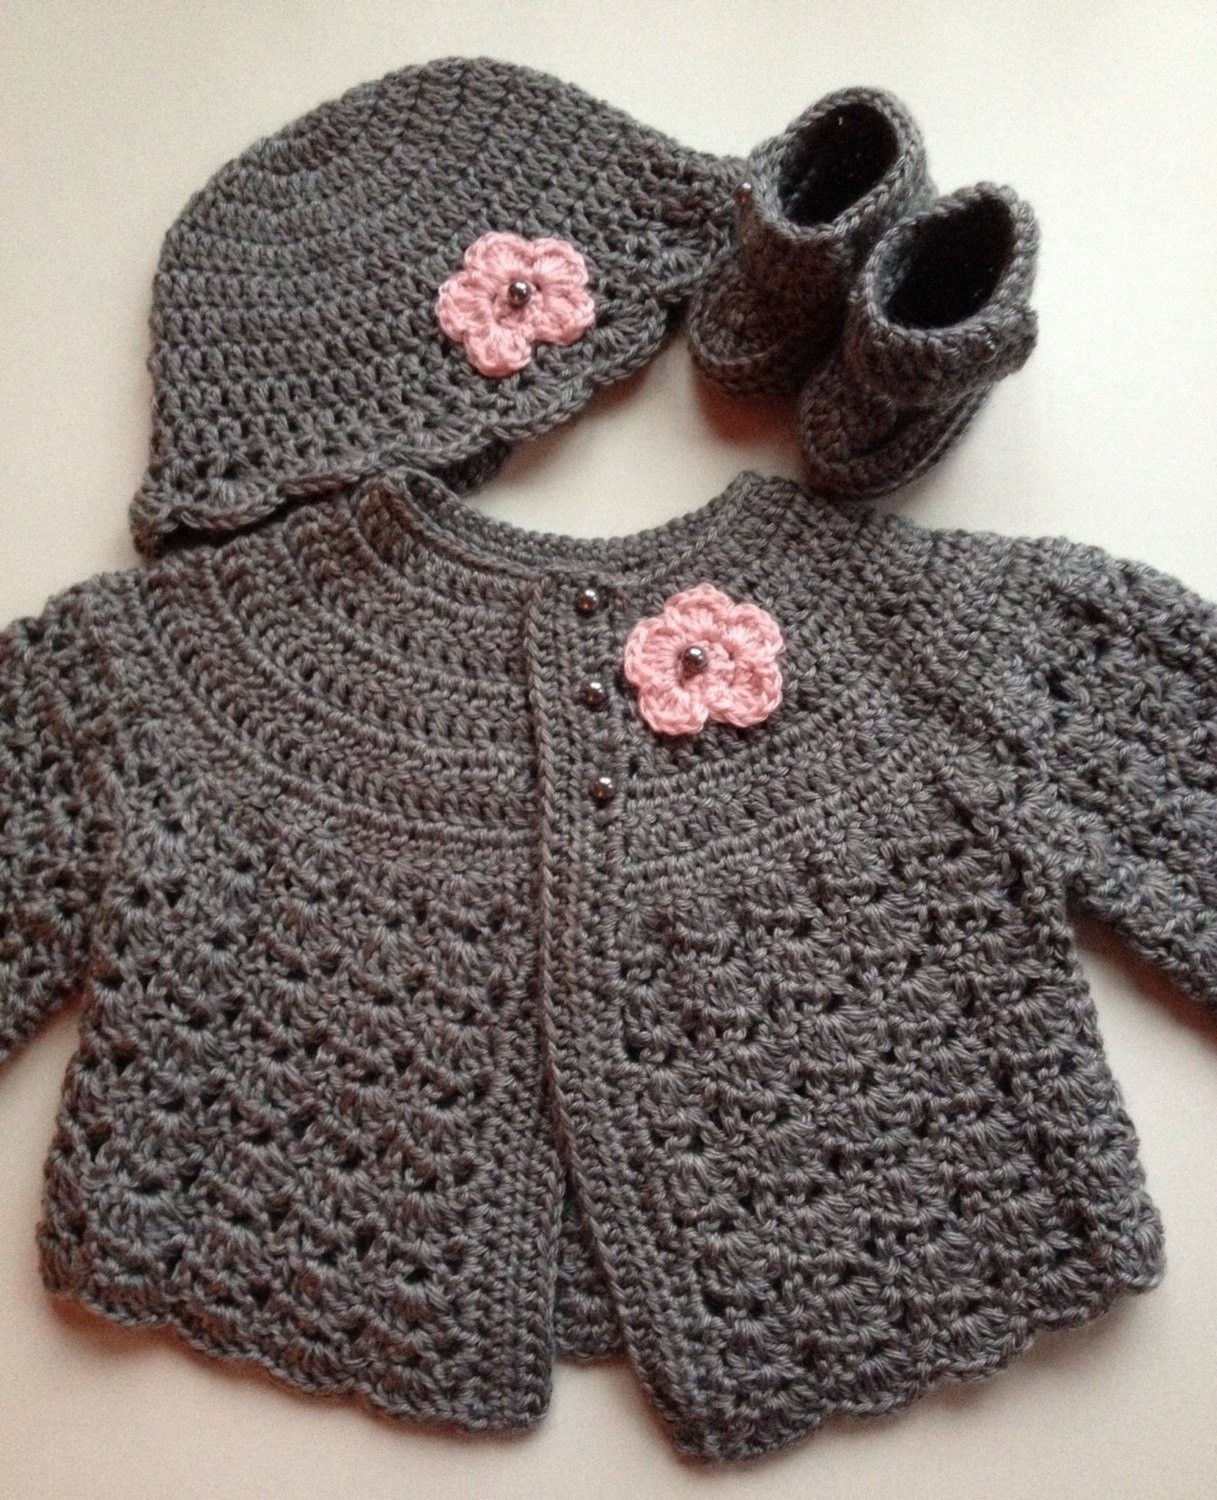 Crochet Baby Sweater Beautiful Crochet Baby Sweater Hat Booties Set Heather Grey 3 6 Mo Of Charming 44 Images Crochet Baby Sweater